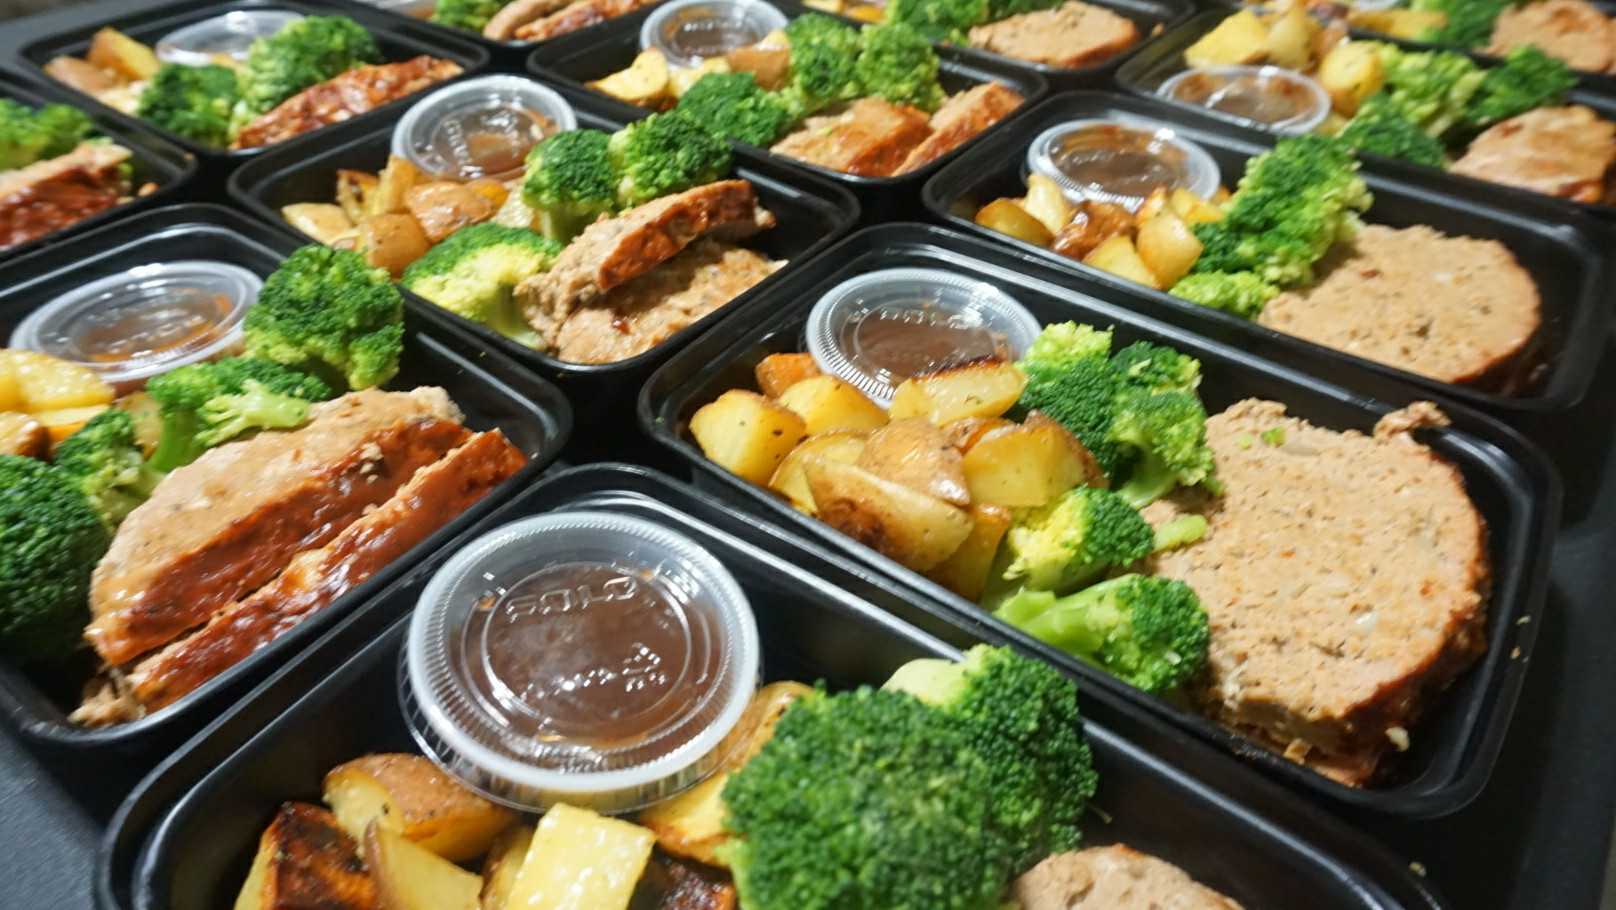 Skinny BBQ Turkey Meatloaf  Lean ground turkey meatloaf, baked with a savory low carb BBQ sauce! Comfort food without the high calories. Served with roasted potatoes and broccoli. Side of extra sugar free BBQ sauce.